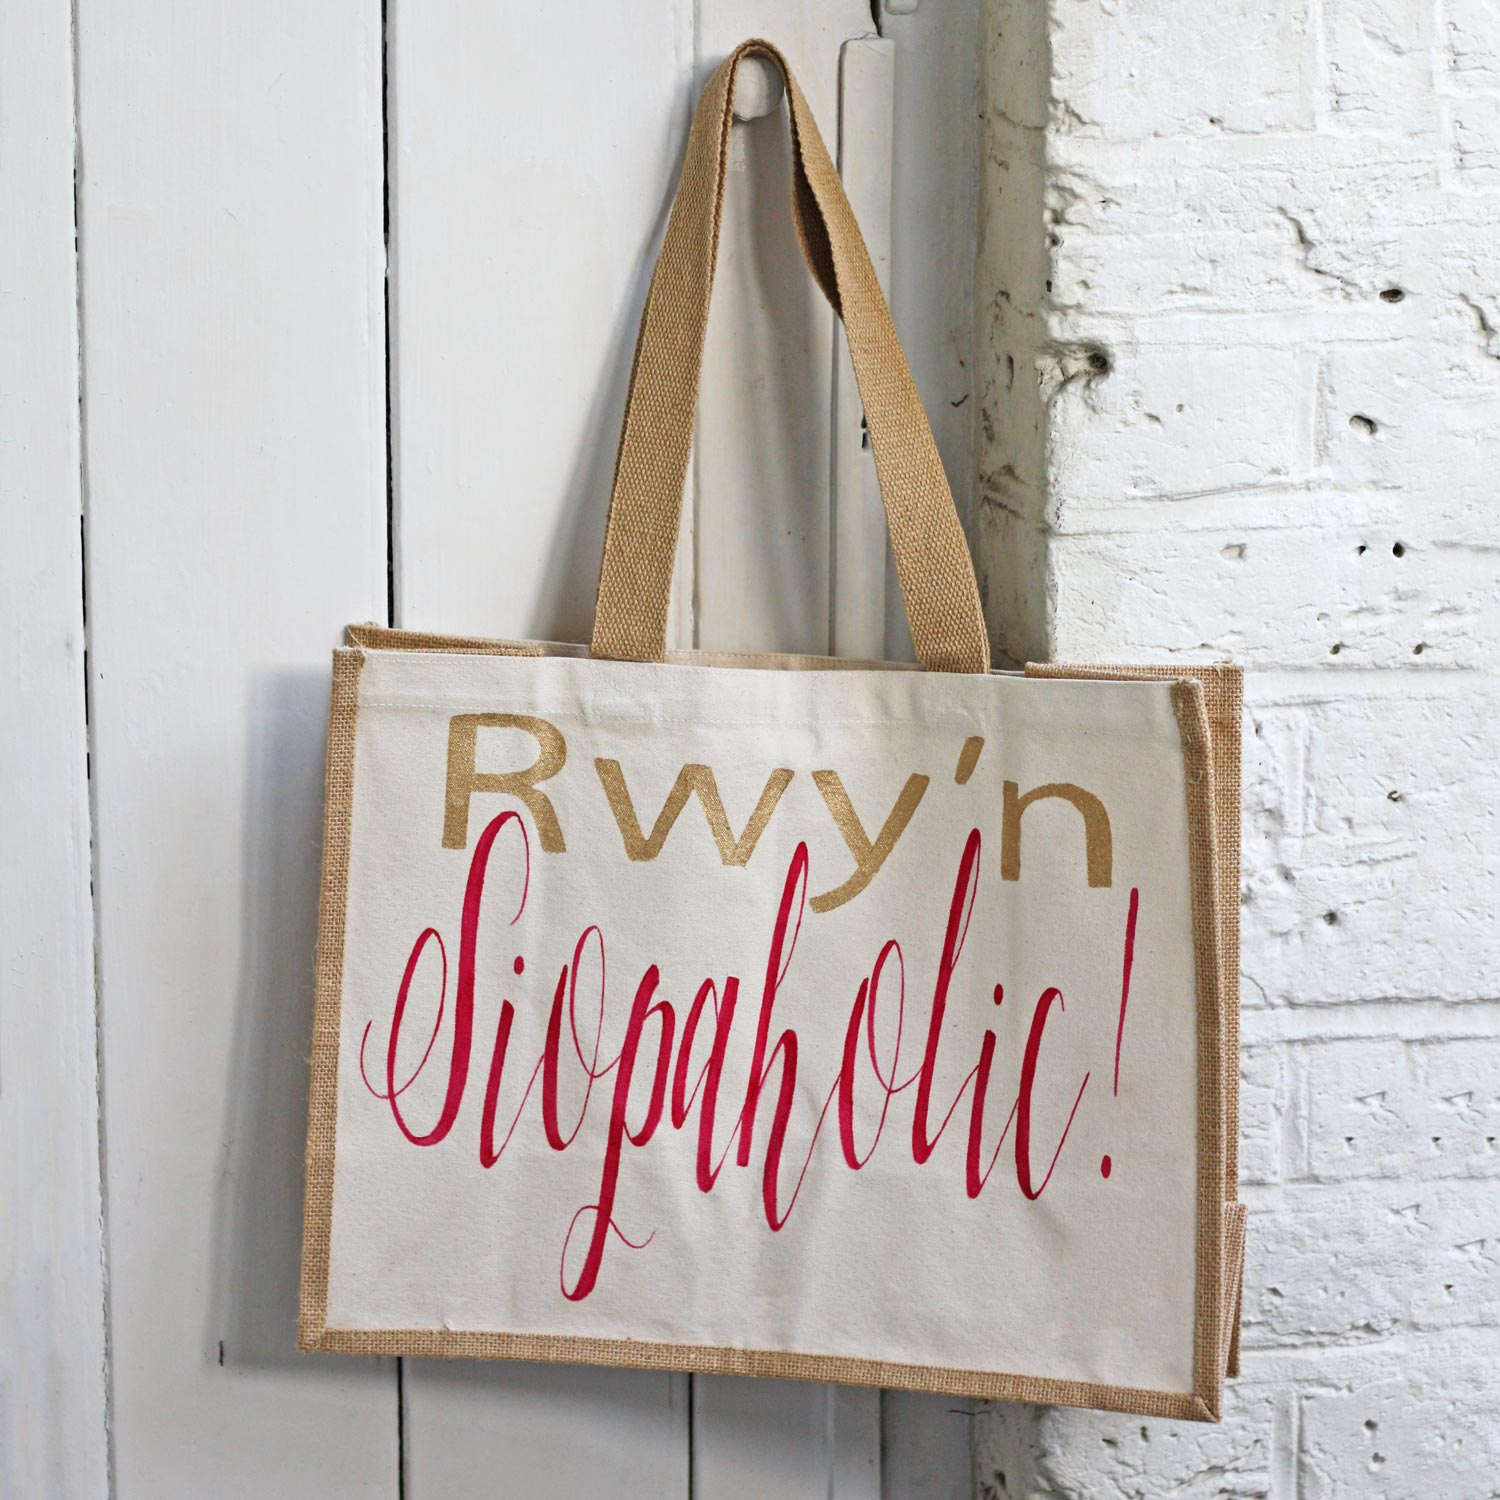 Shopping Tote / Bag - Rwy'n Siopaholic! - I'm a Shopaholic!-Bag-The Welsh Gift Shop